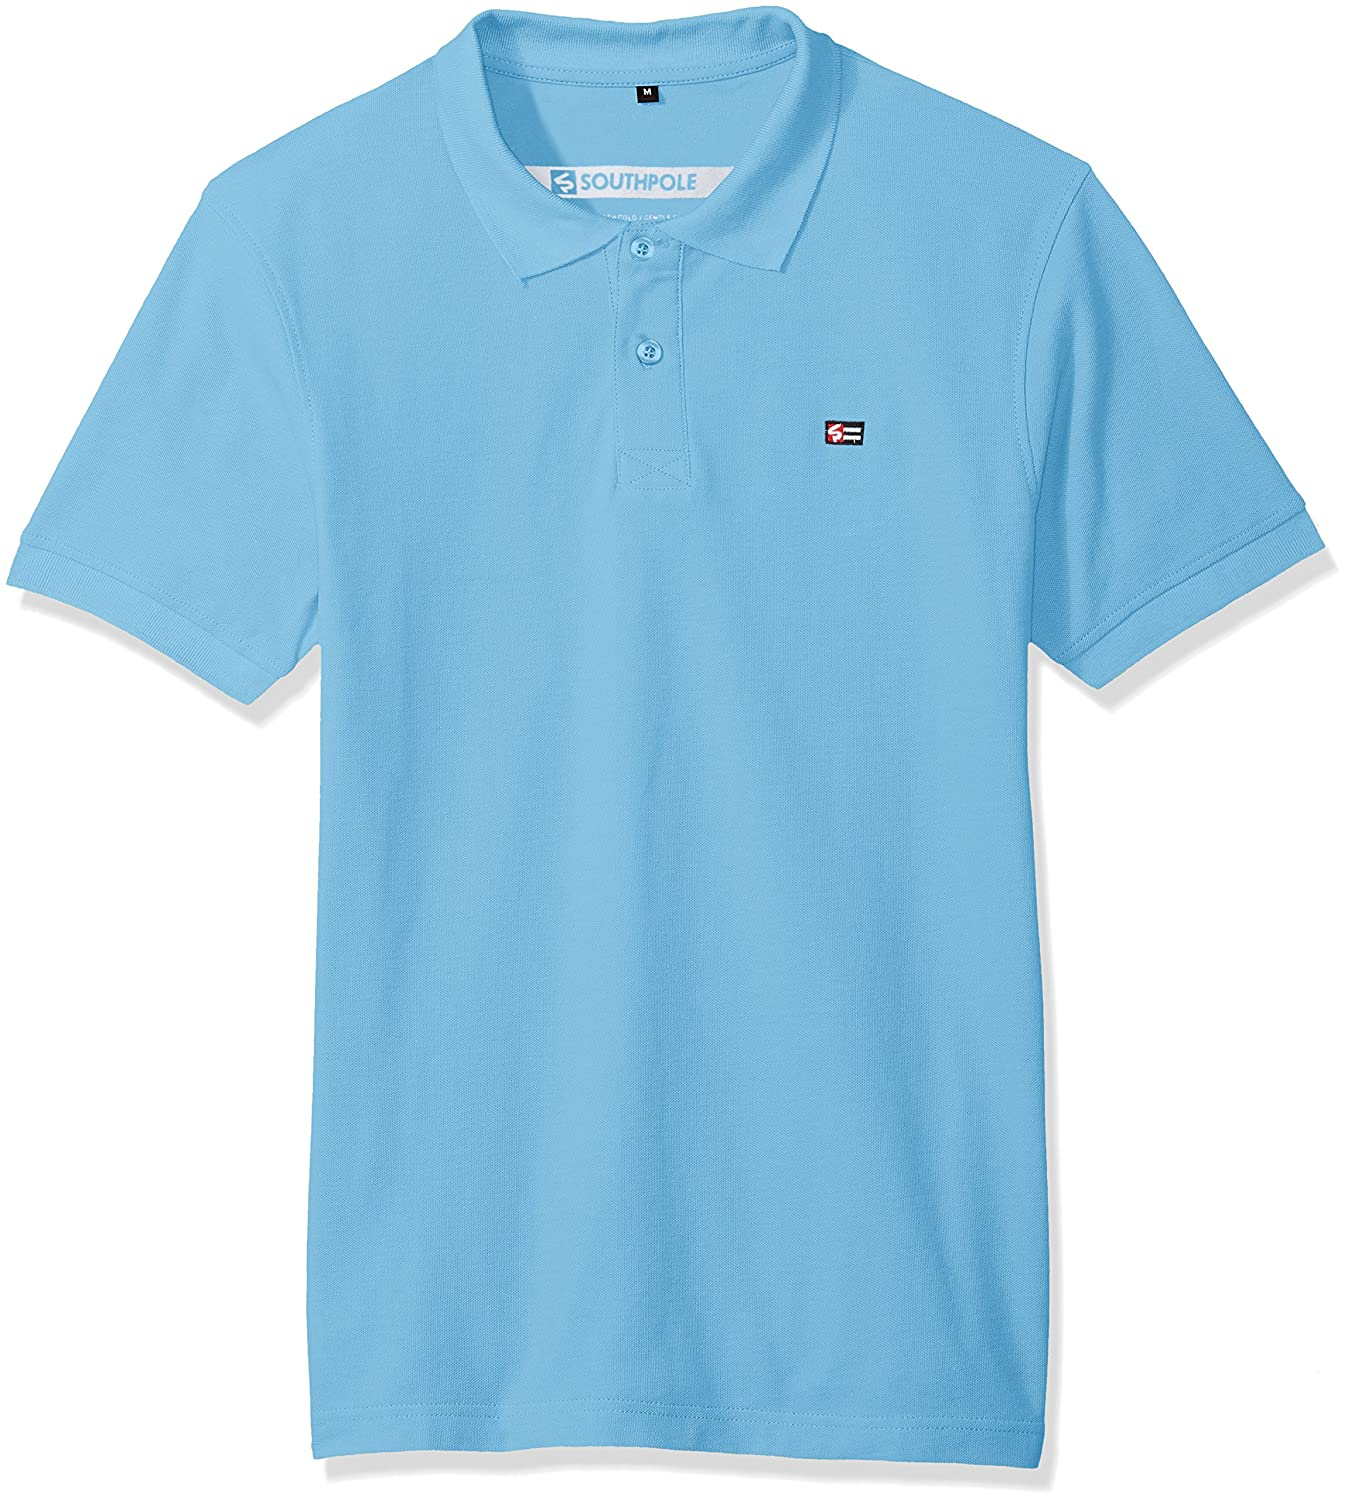 Southpole Men's Classic Short Sleeve Solid Polo Shirt